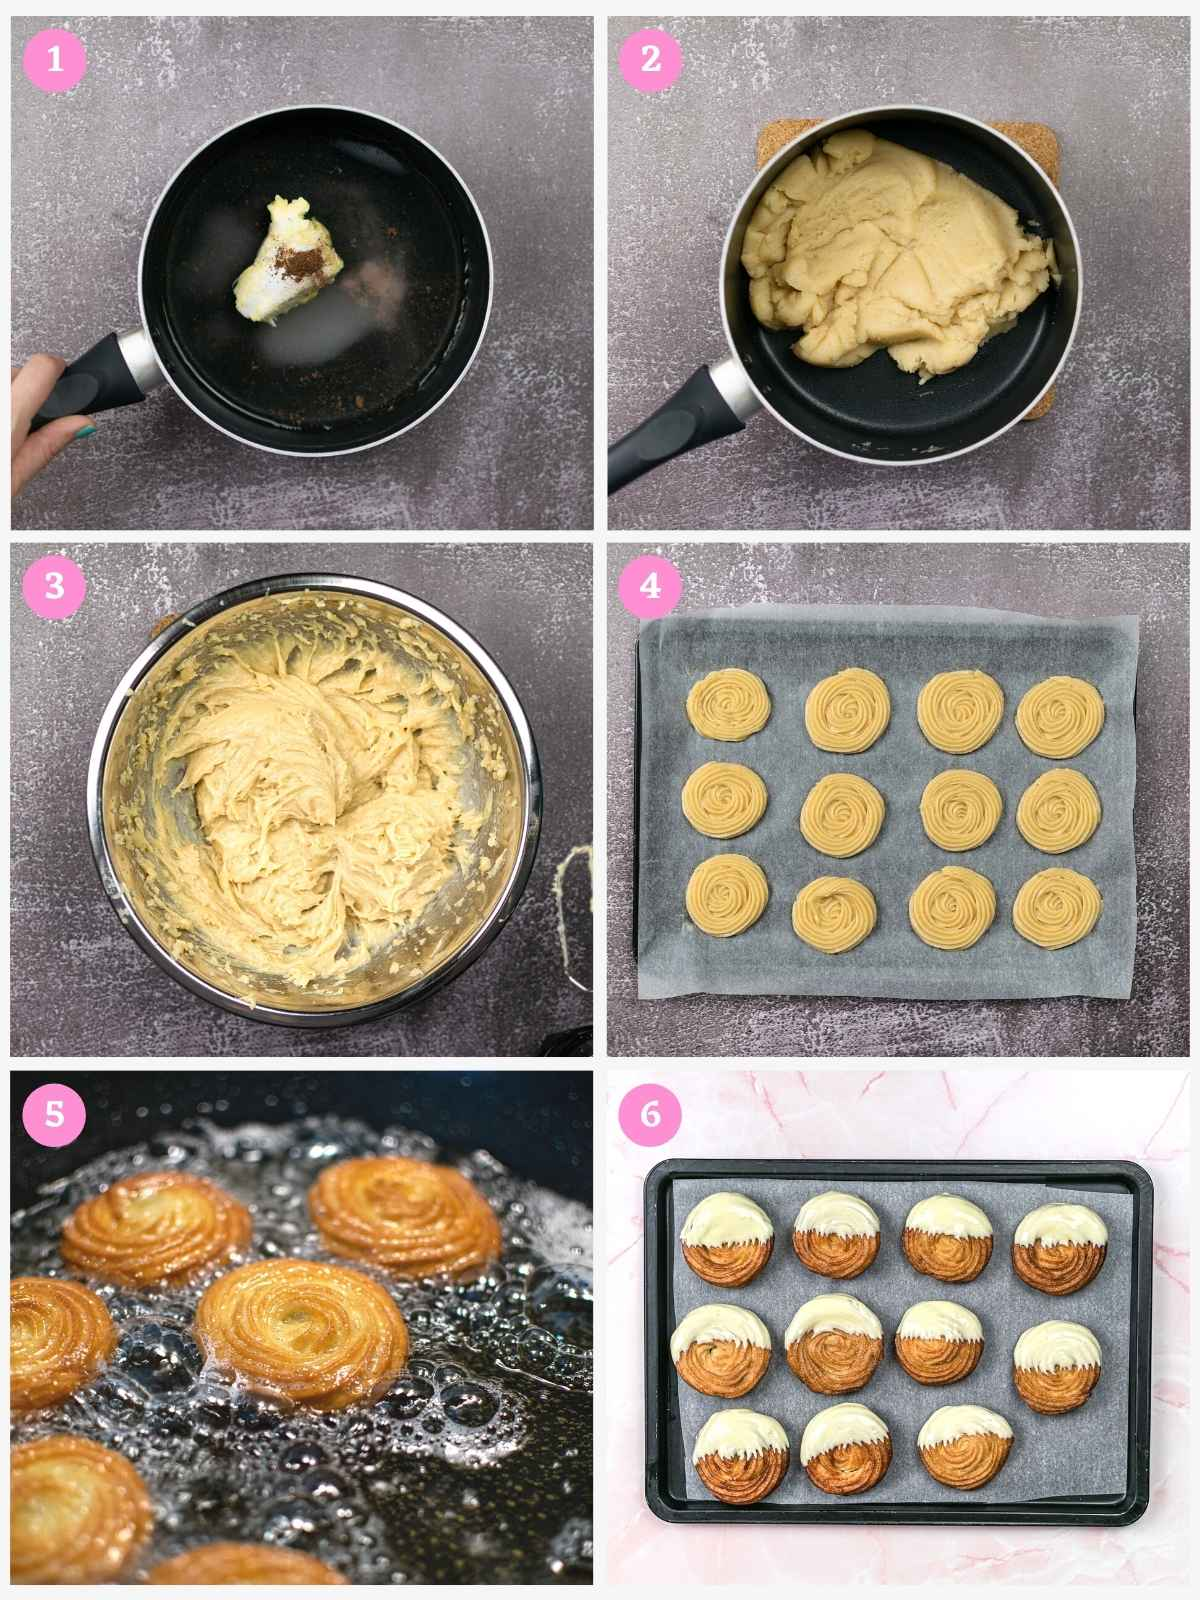 Collage of 6 images showing how to make Churros Cookies Step by Step